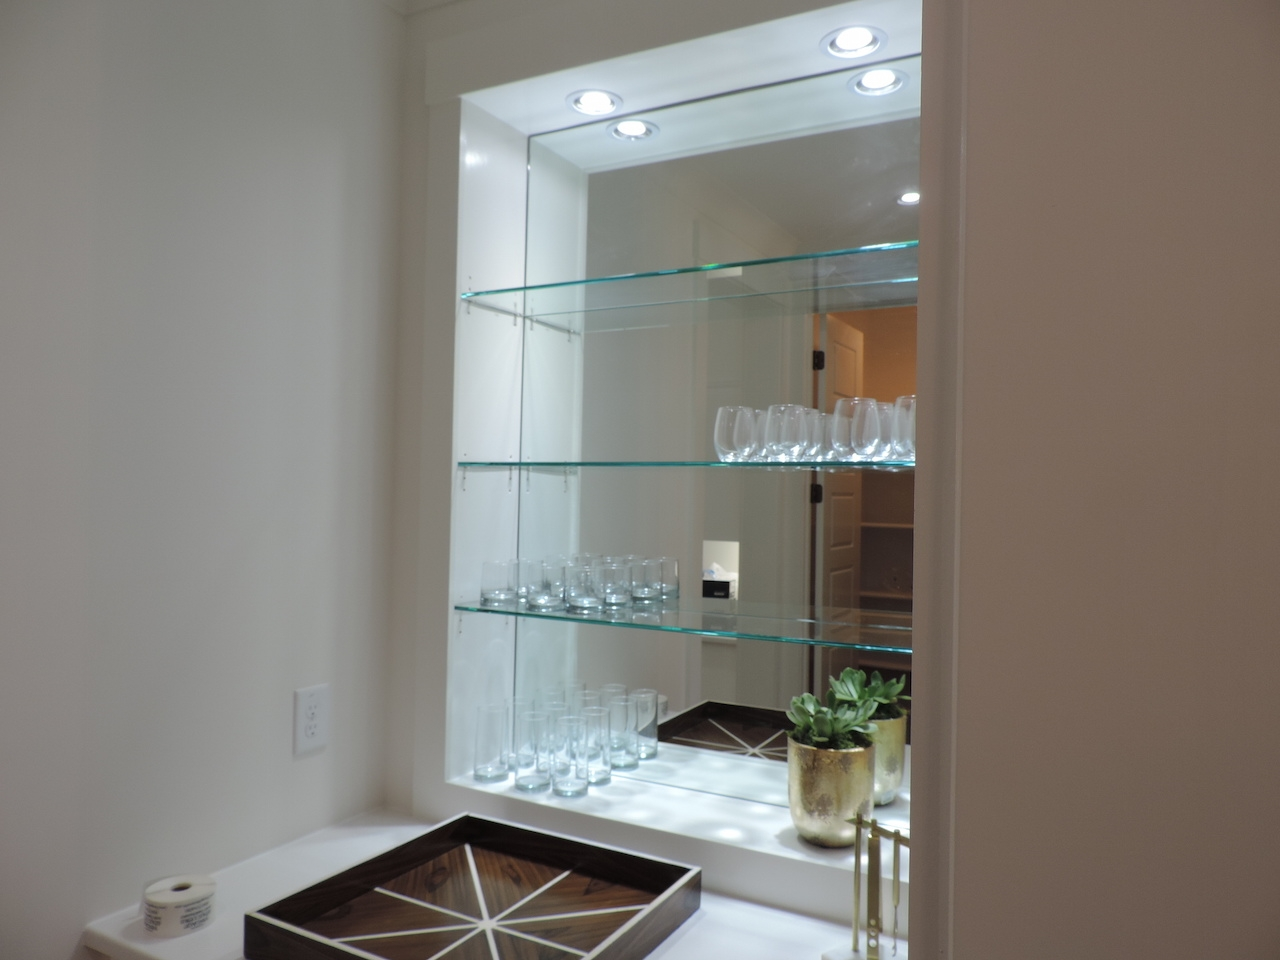 Decorative Custom Glass Shelves Home Decorations Inside Glass Shelving (Image 4 of 15)